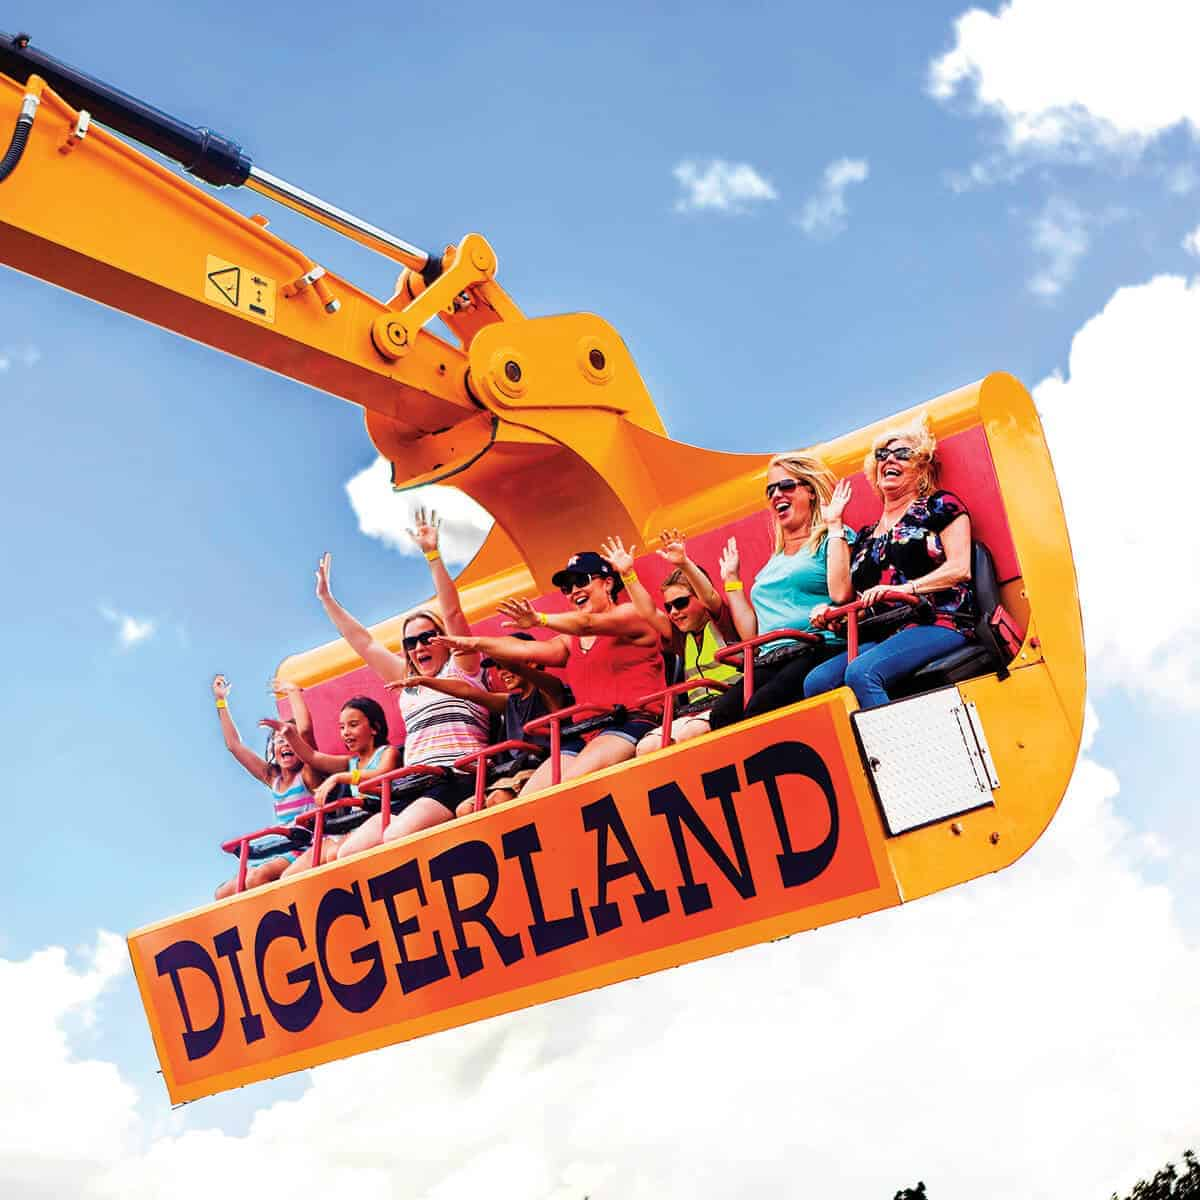 Family on the Spin Dizzy excavator ride at Diggerland USA